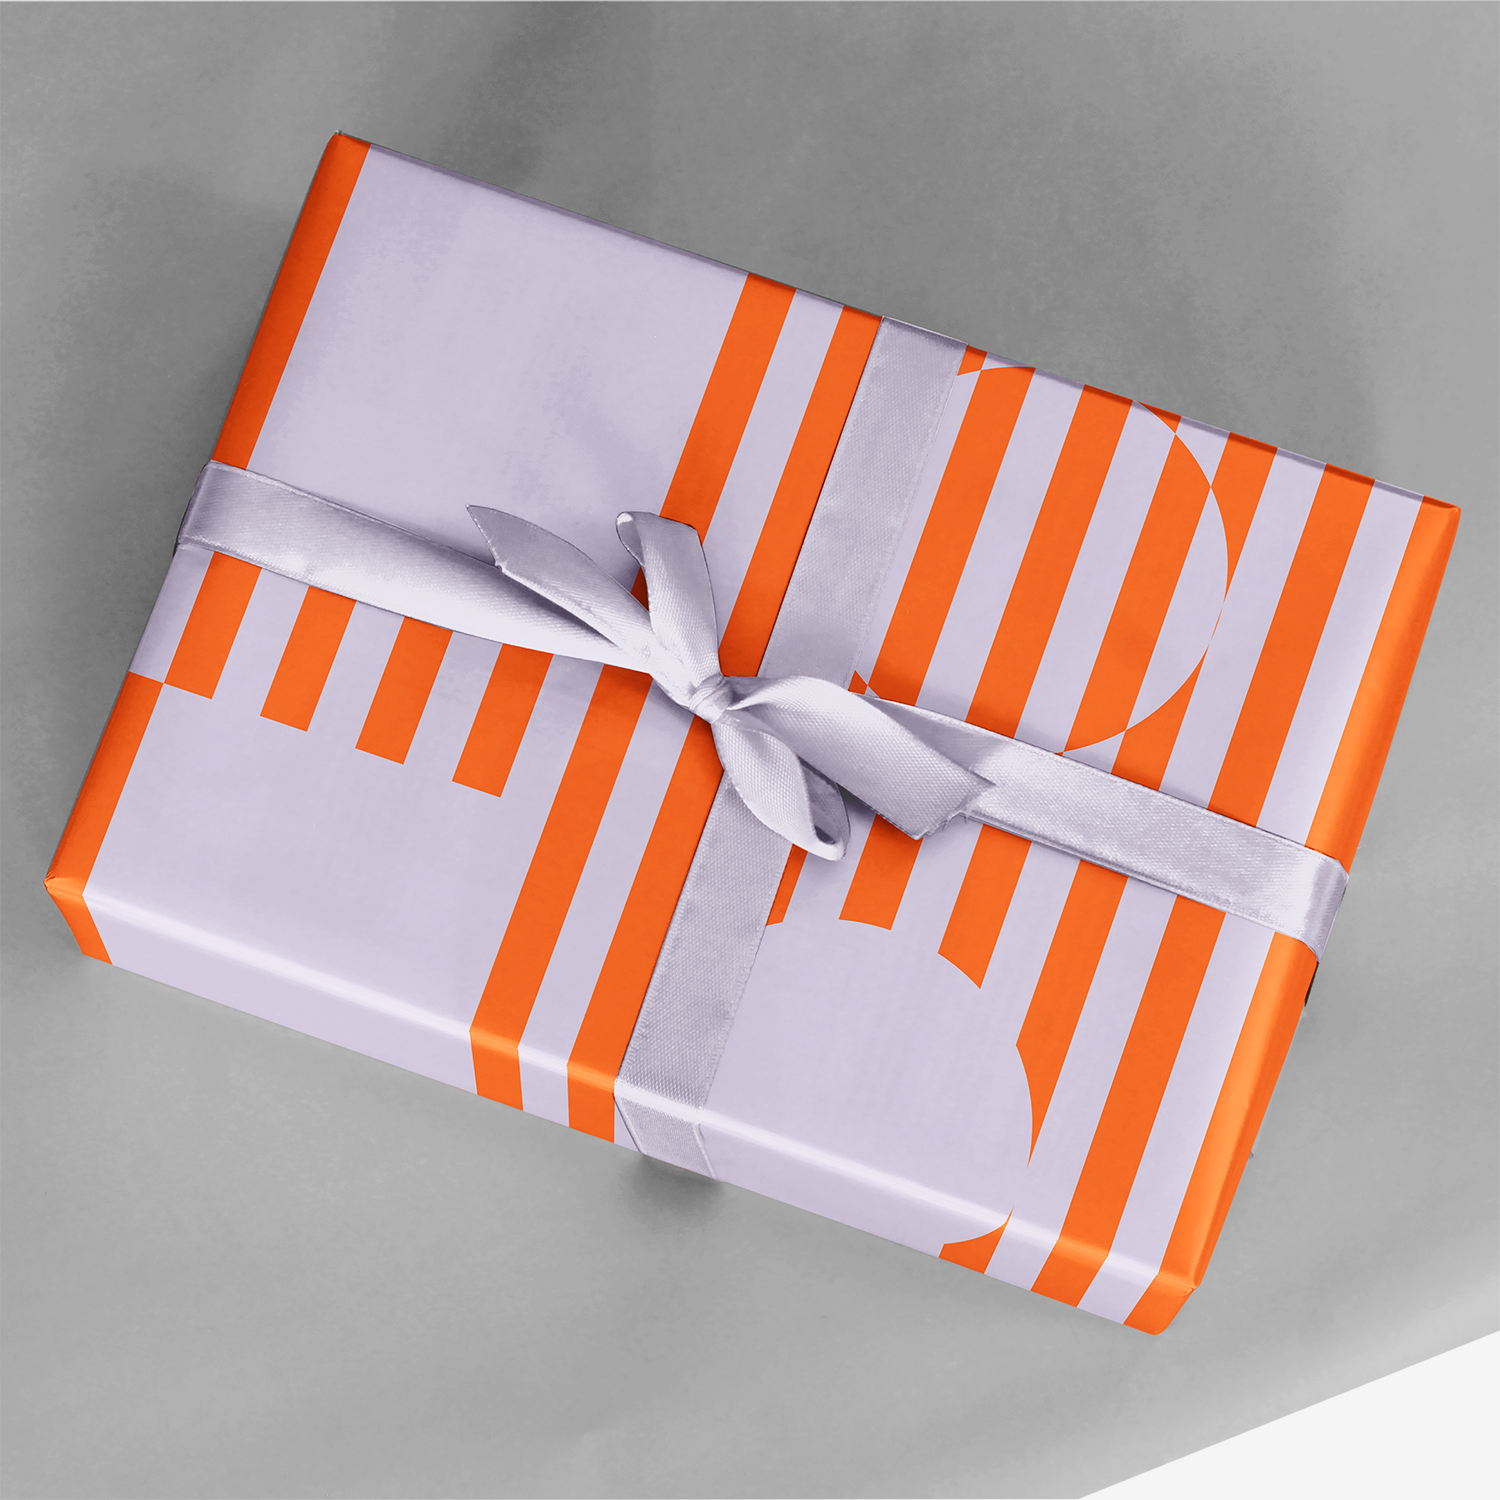 gift wrapped in bold orange chromasect wrapping paper